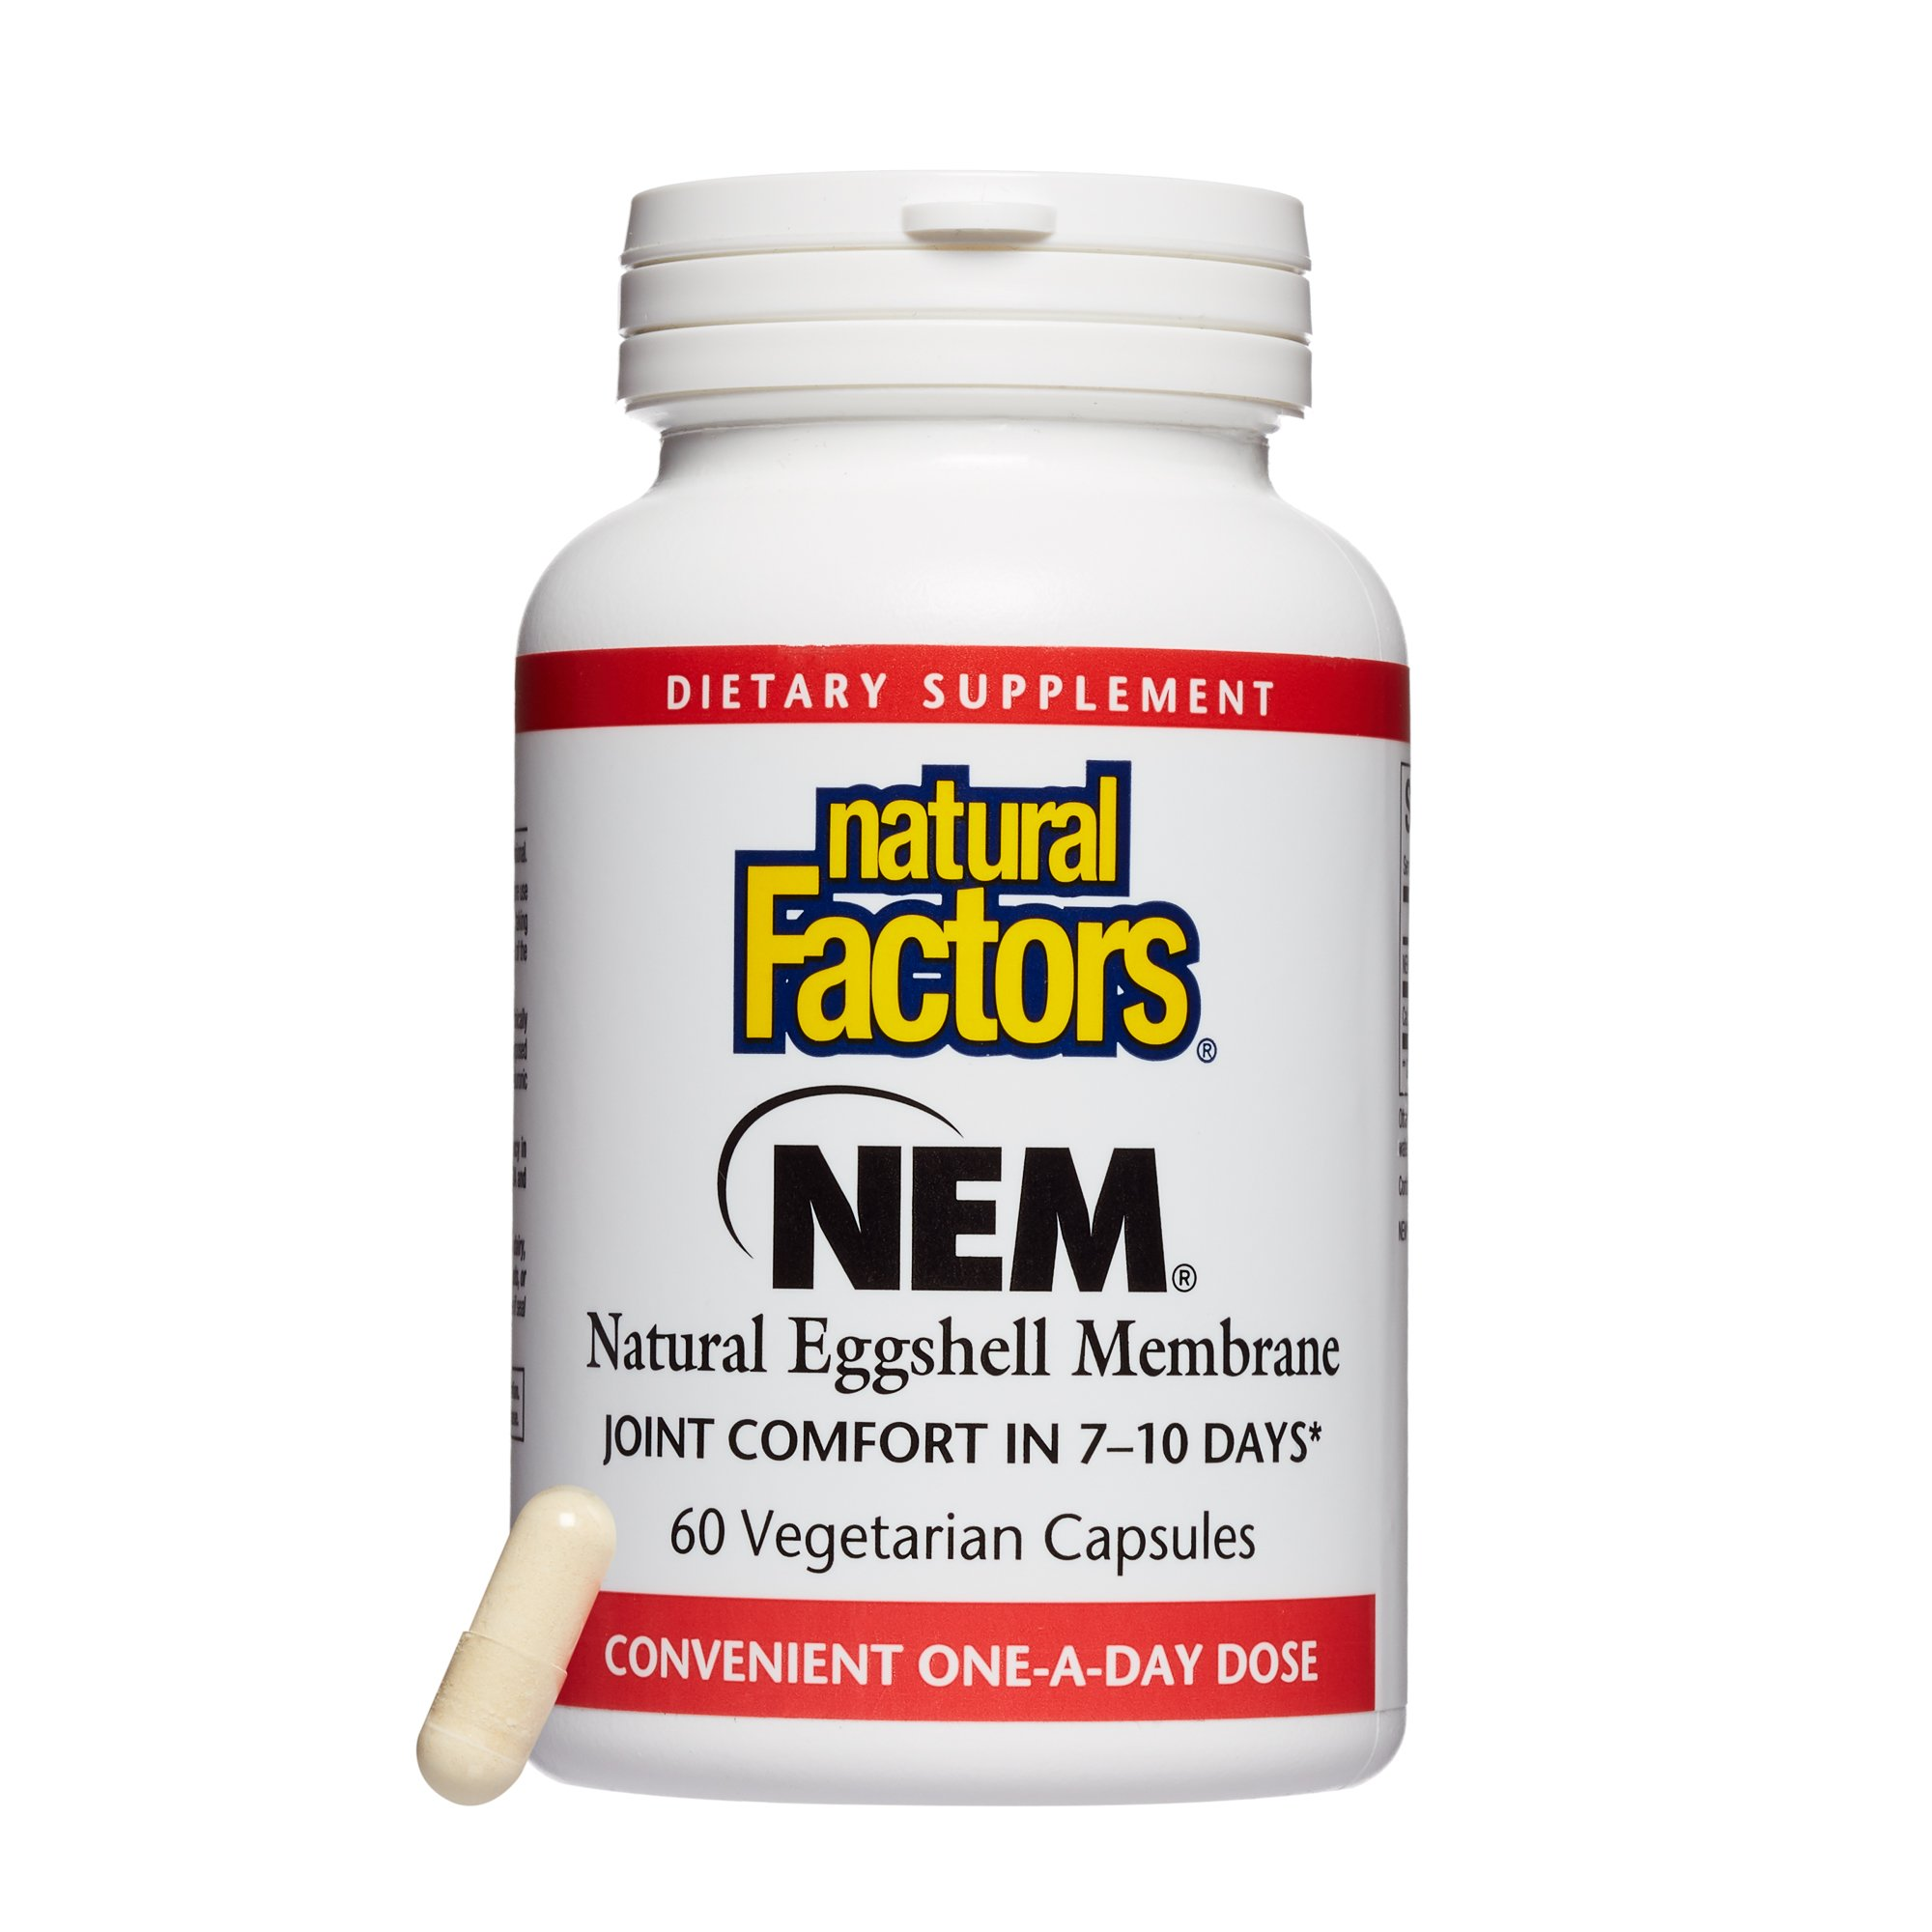 Natural Factors - NEM Natural Eggshell Membrane 500mg, Promotes Joint Comfort and Flexibility with a Natural Source of Hyaluronic Acid, Collagen, and Chondroitin, 60 Vegetarian Capsules